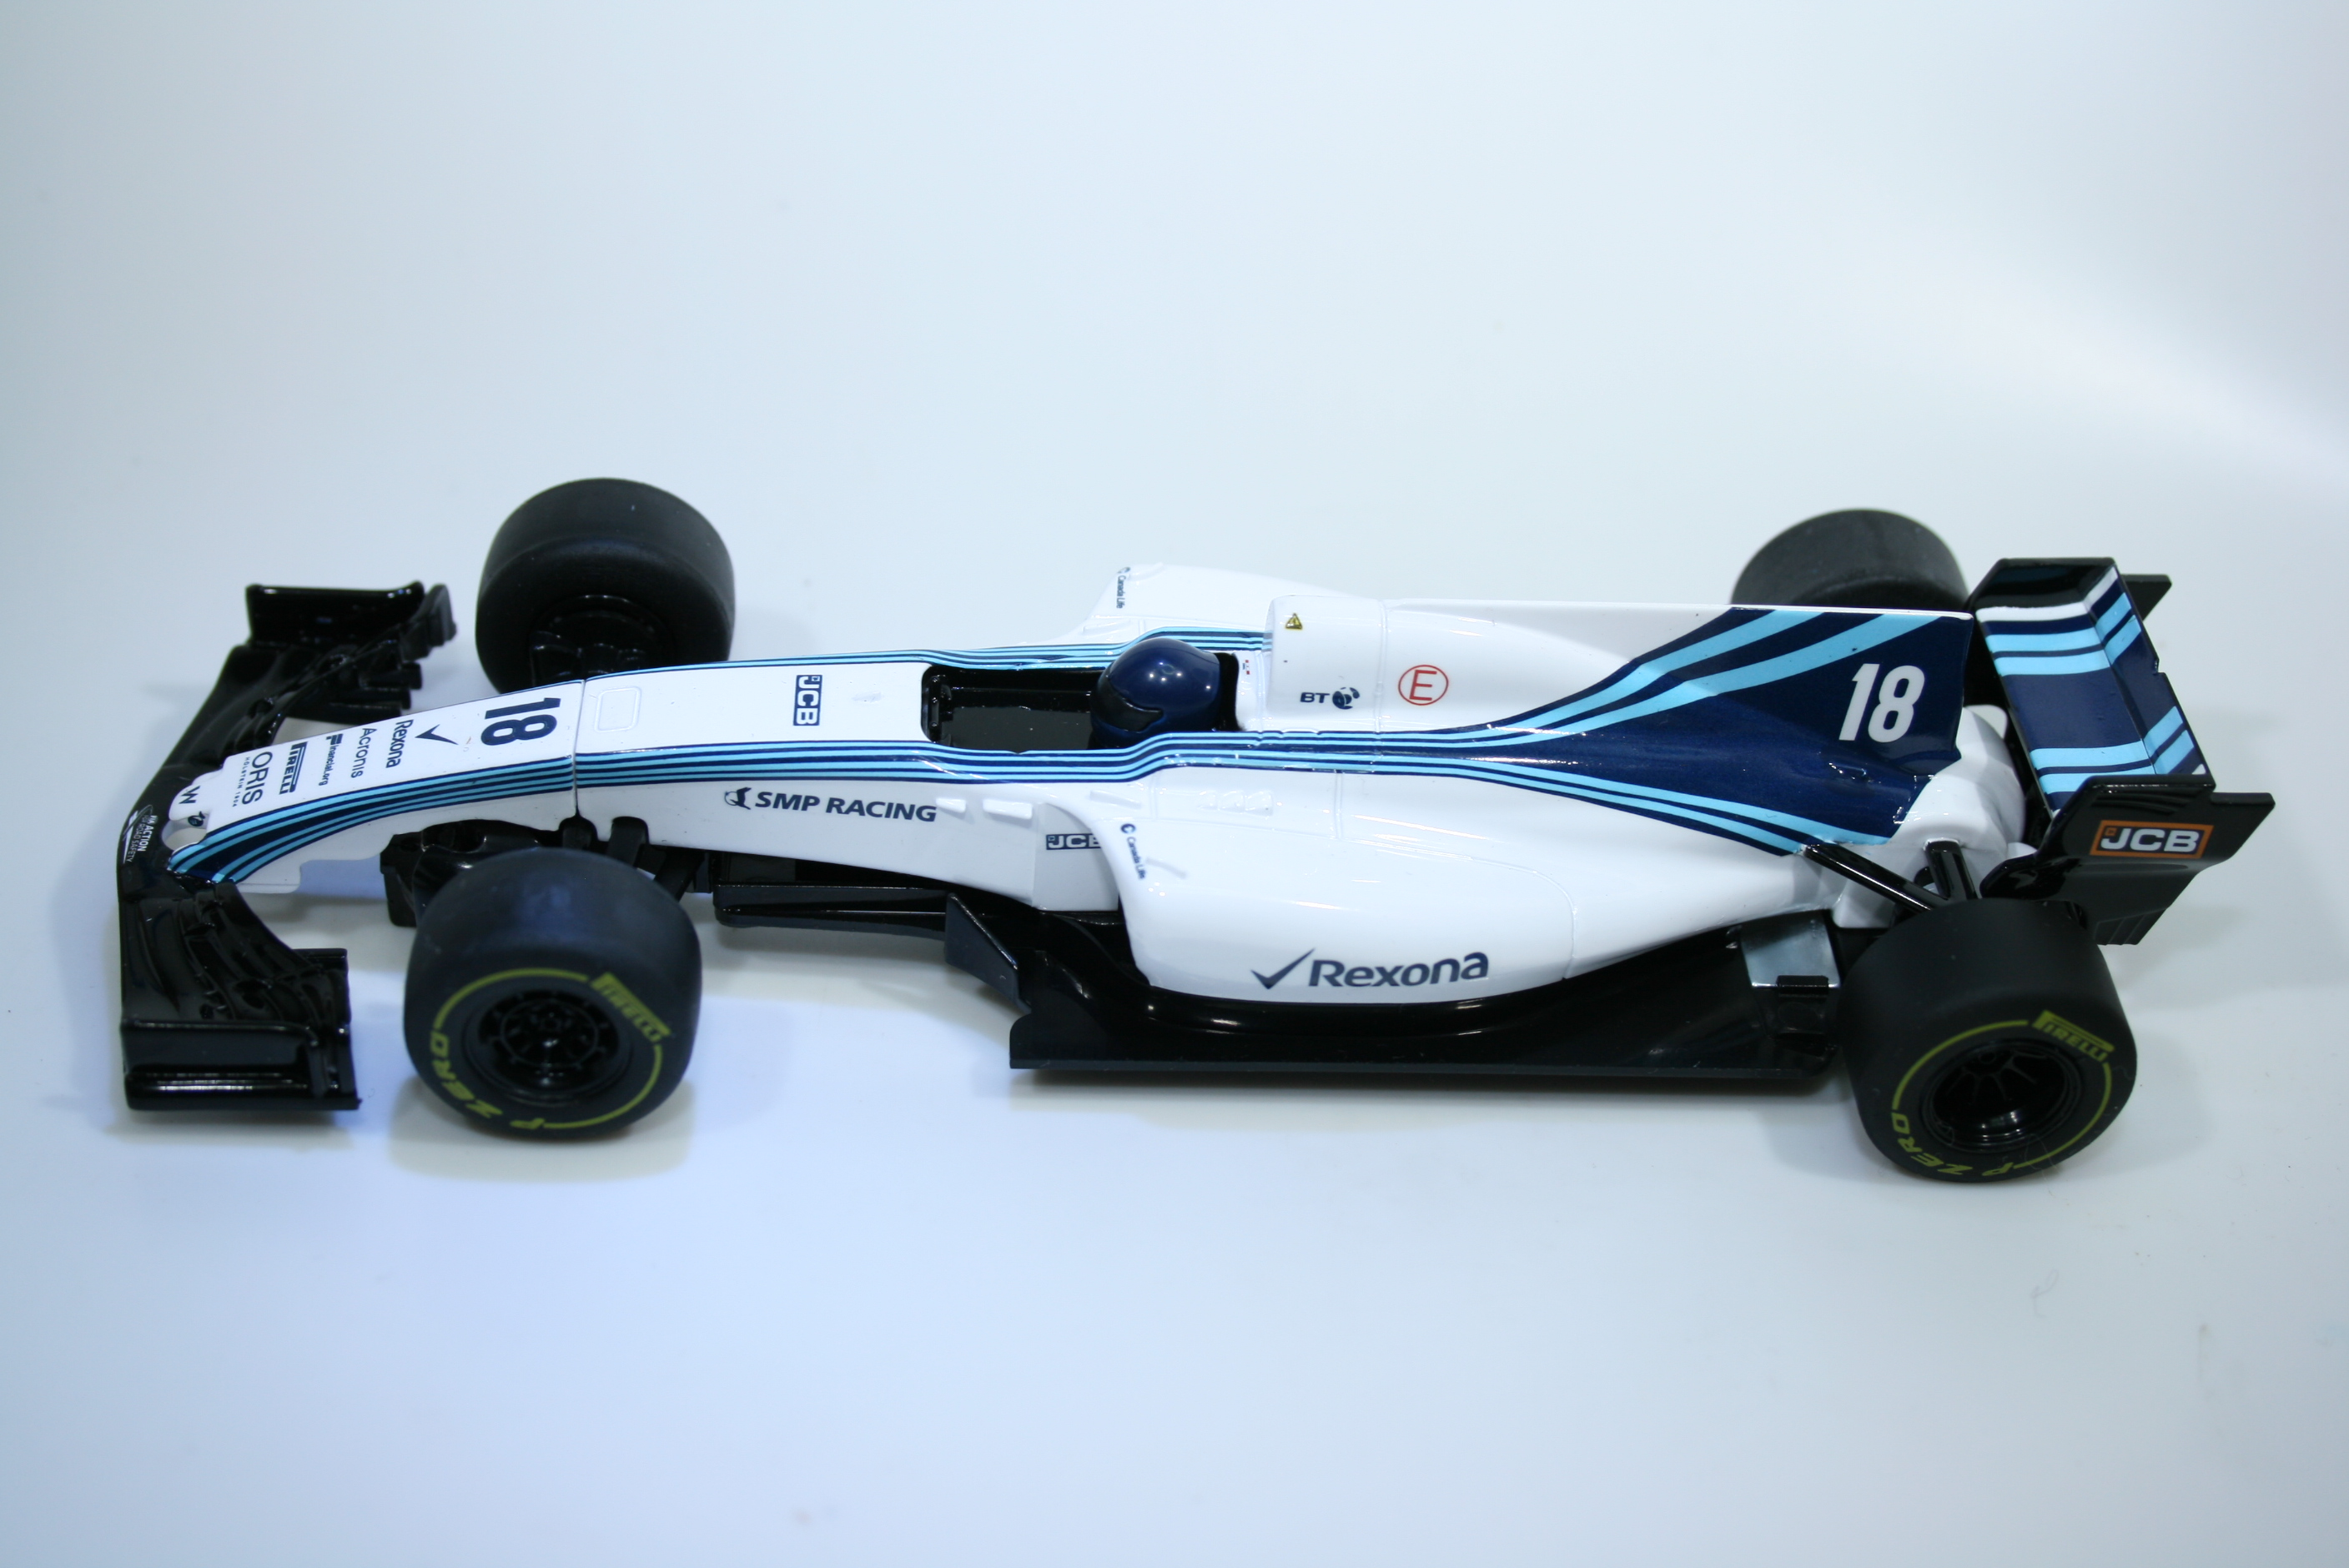 1291 Williams FW40 2018 L Stroll Scalextric C4021 2019 Boxed